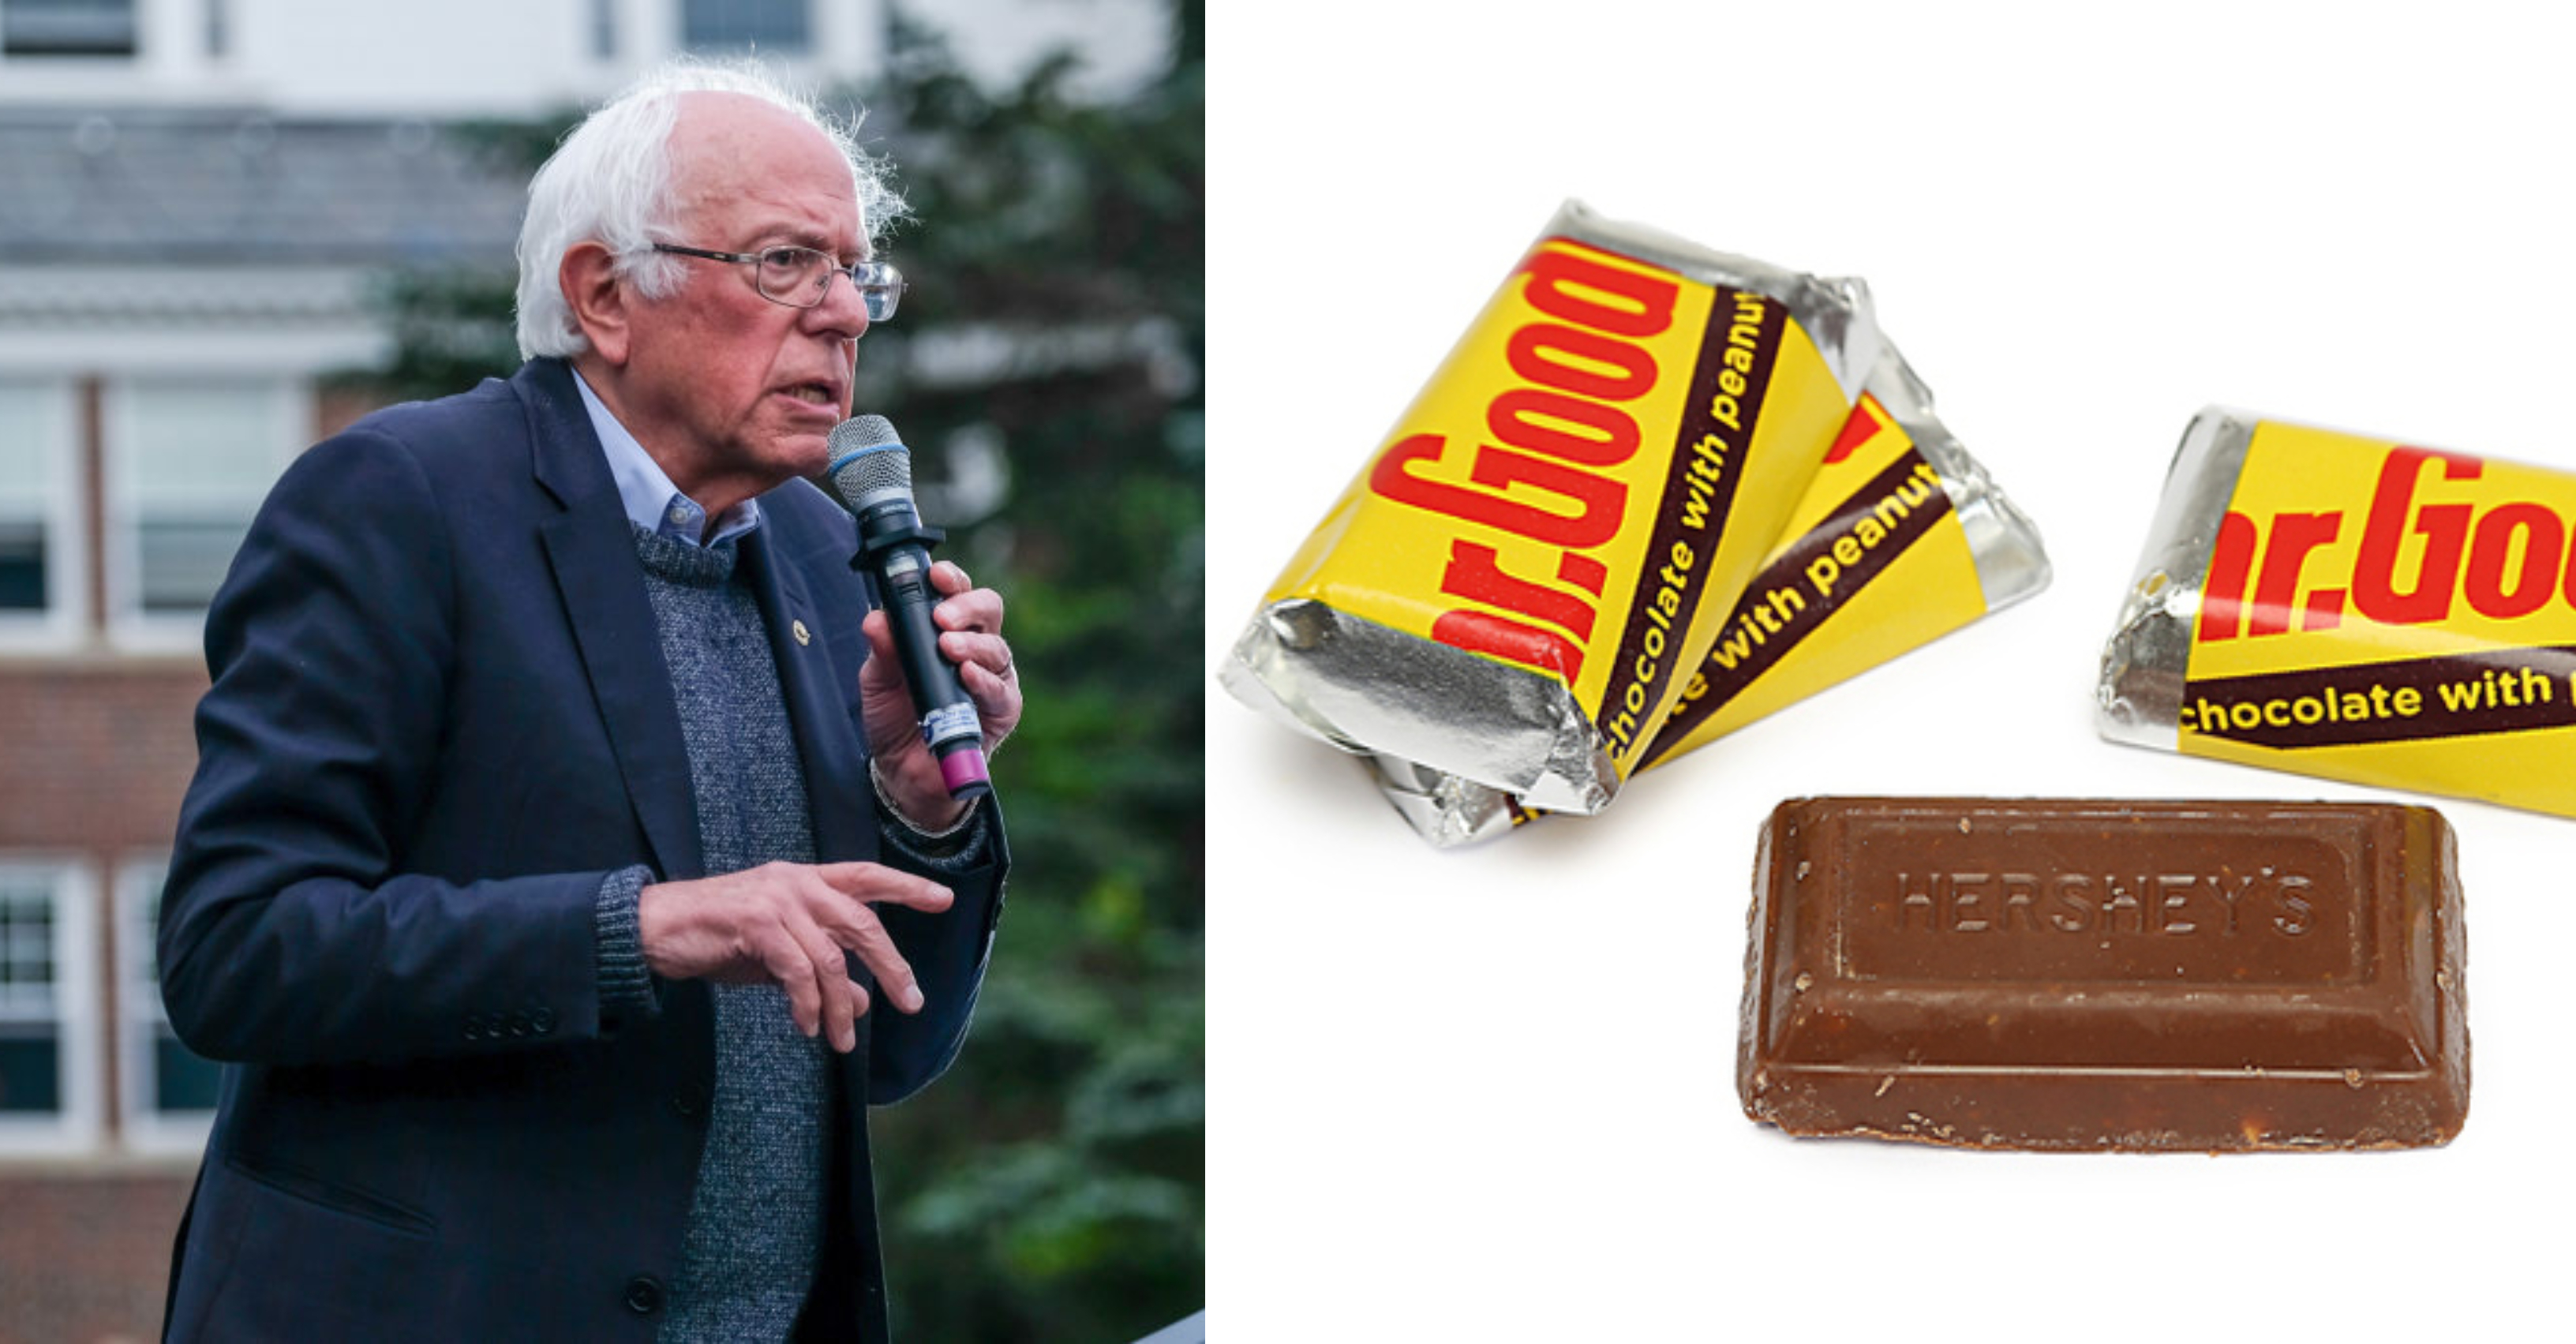 Bernie Sanders – Mr. Goodbar